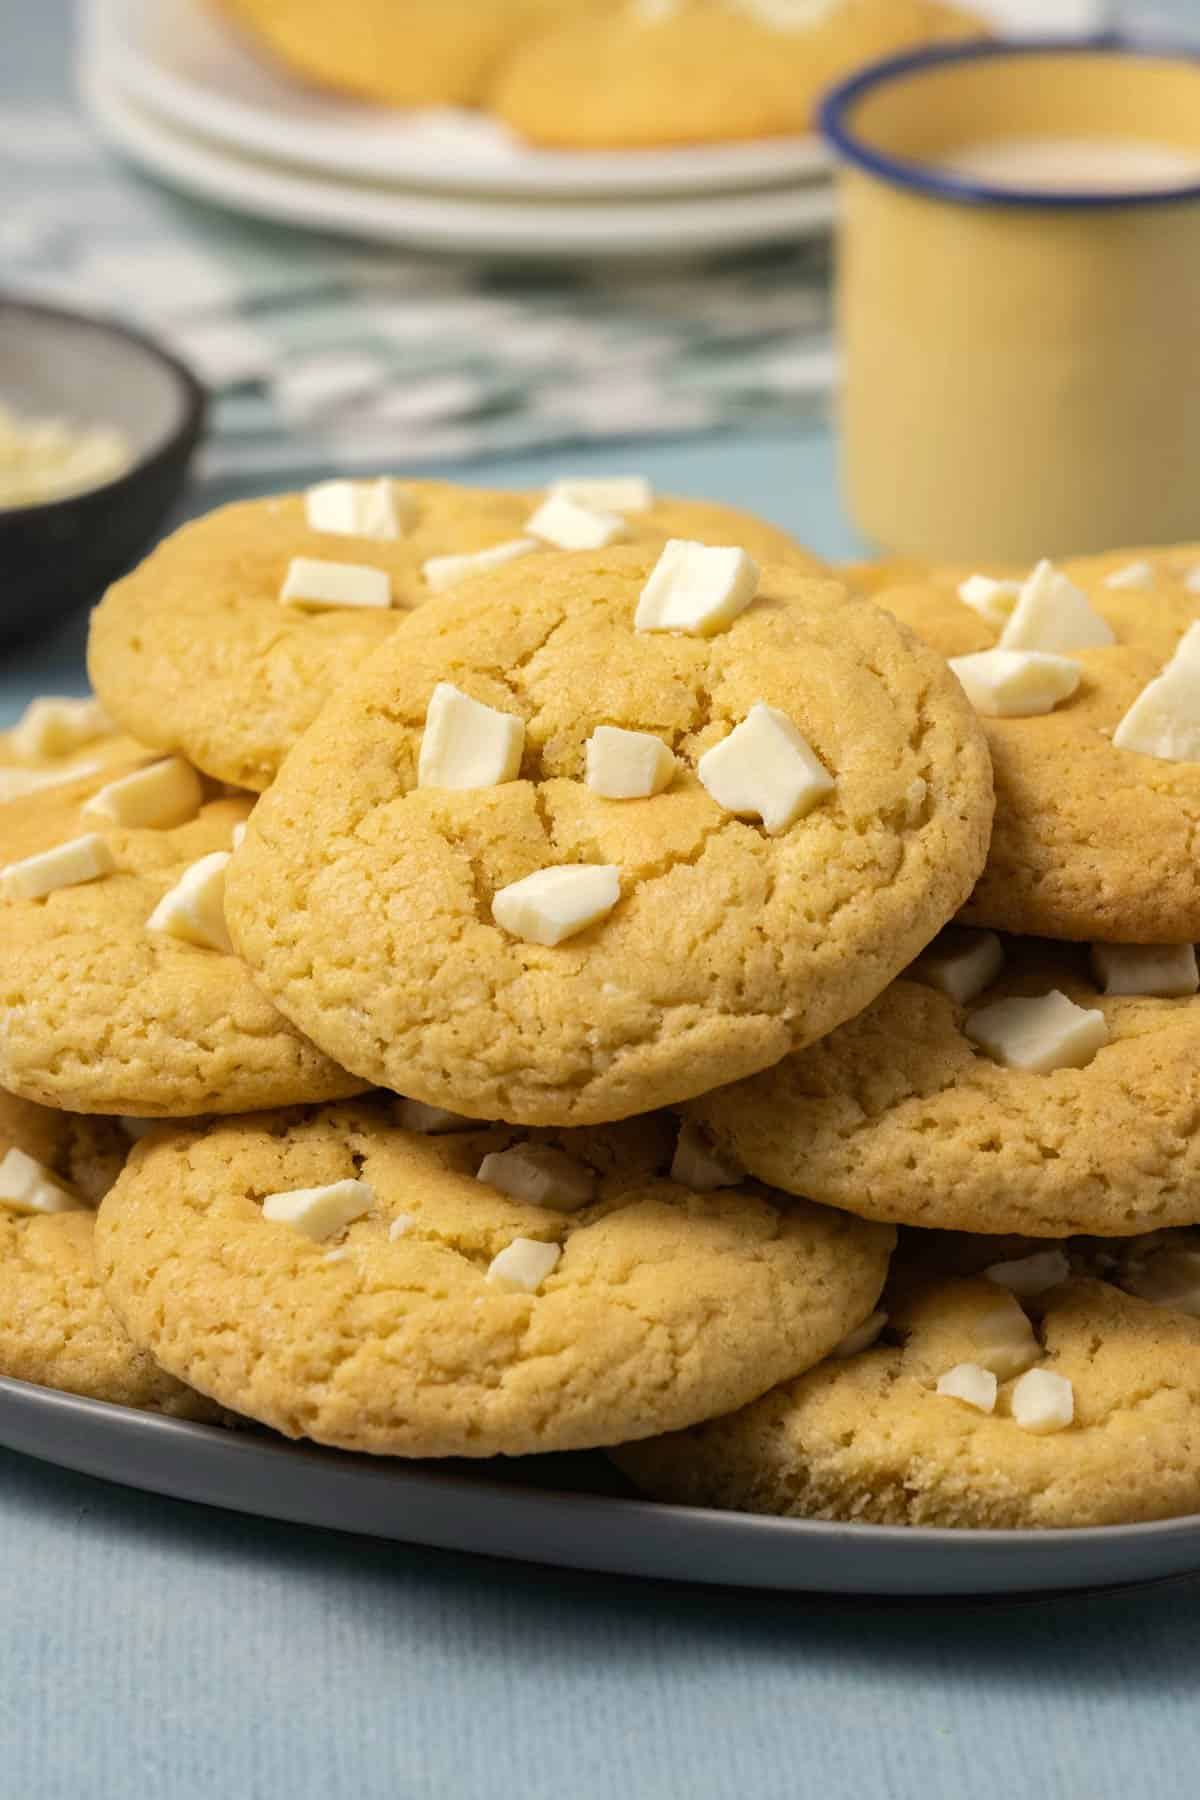 White chocolate chip cookies stacked on a plate.